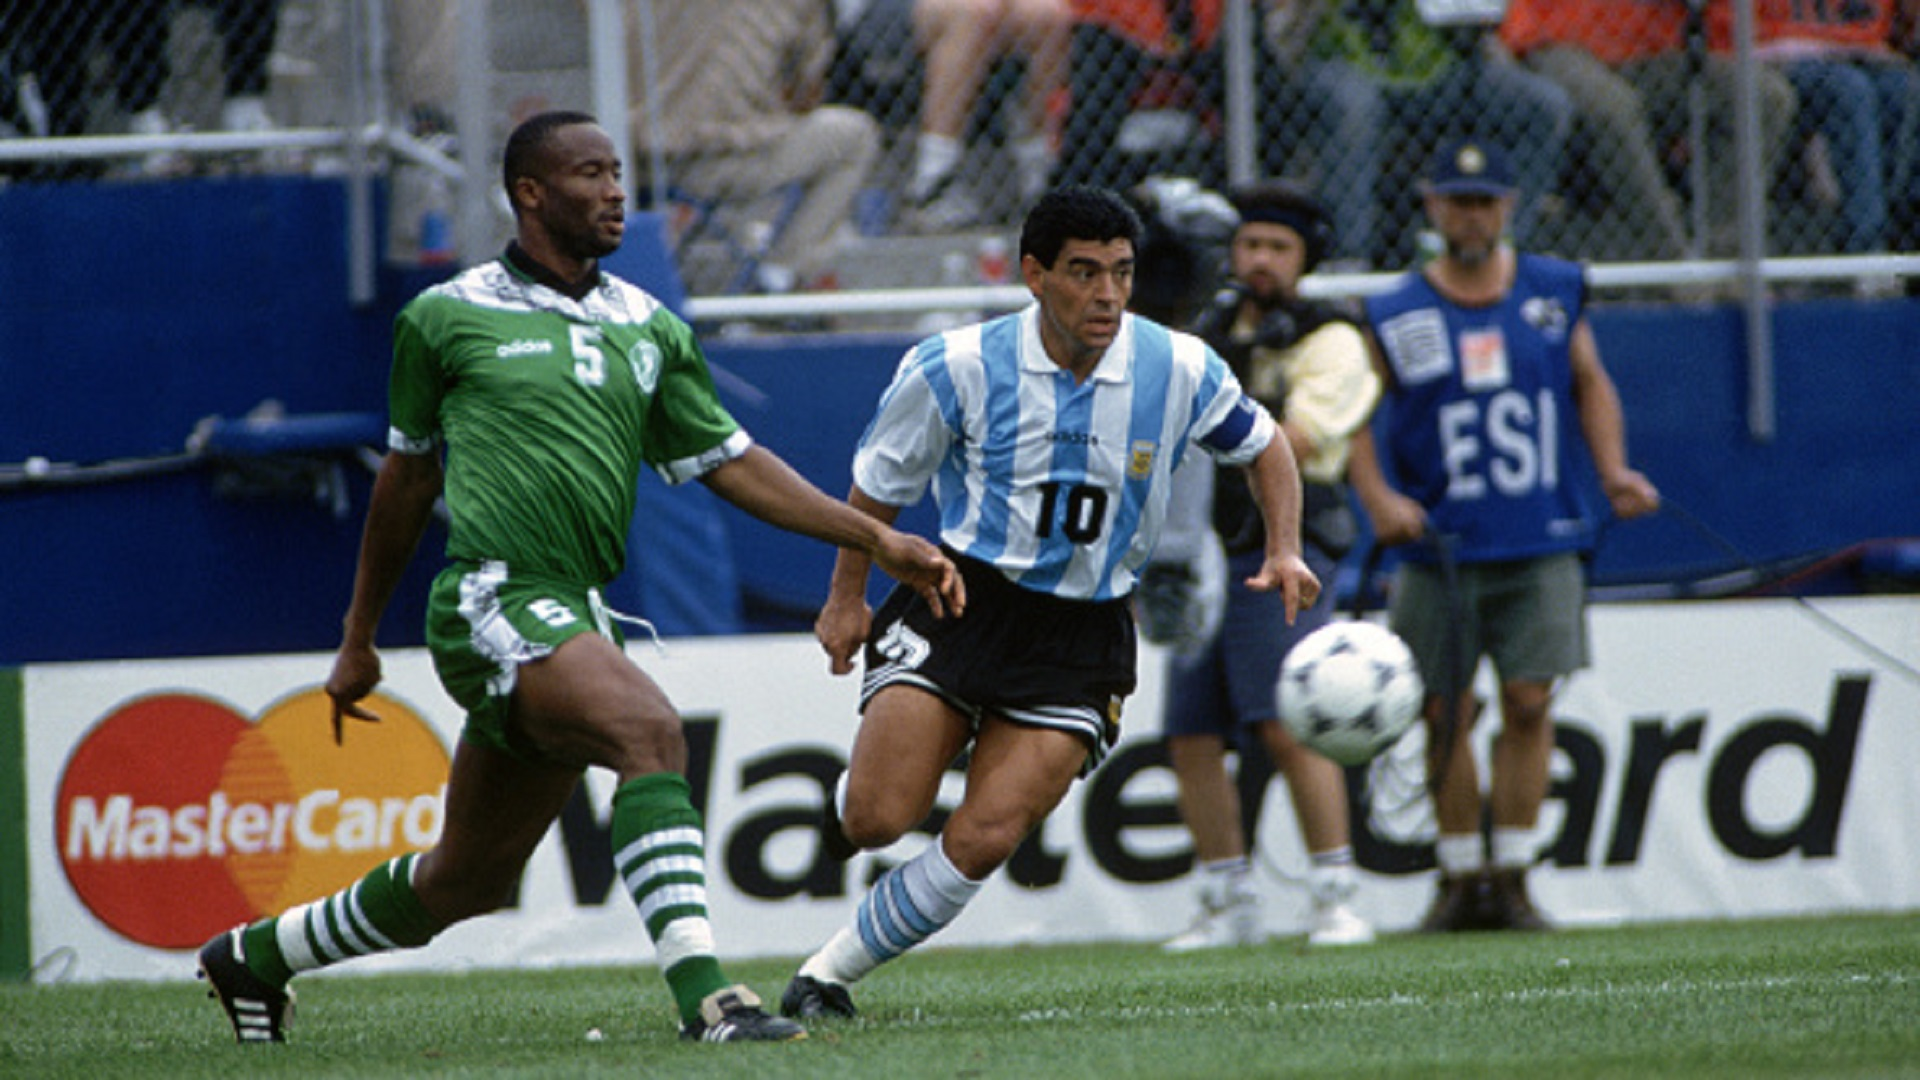 Nigeria hoping to end Messi and Argentina's misery